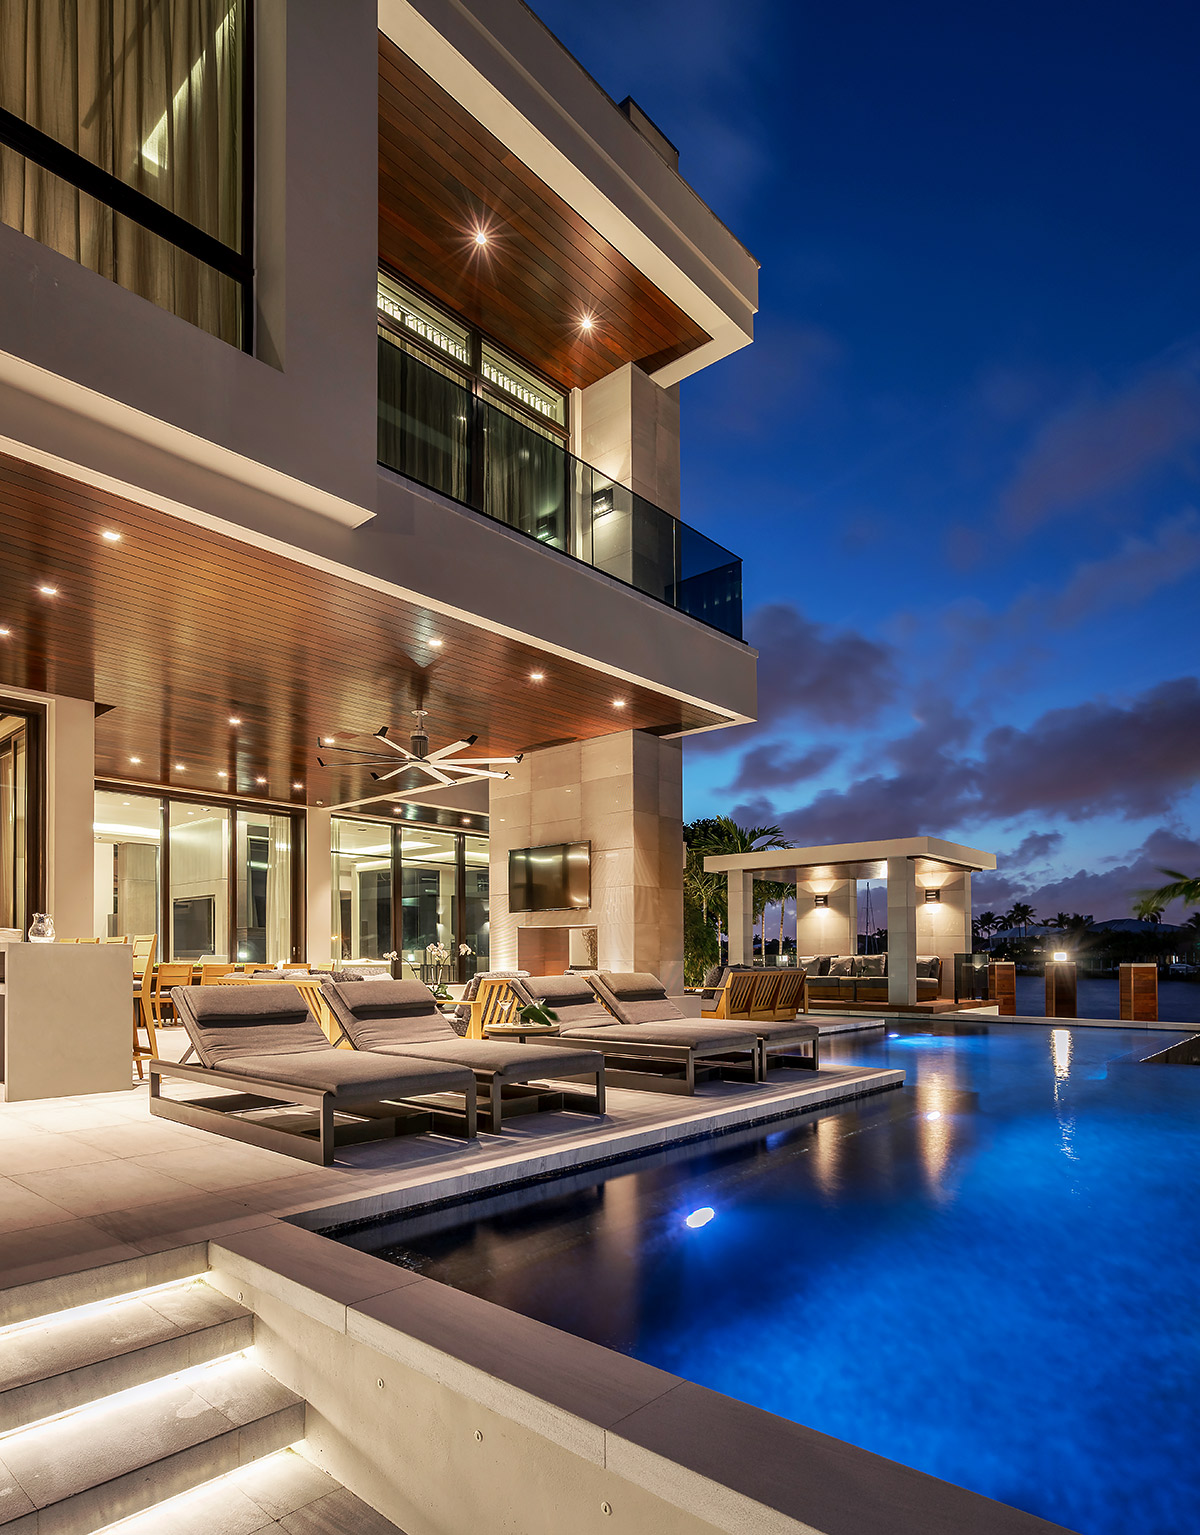 Architectural-Photographer-Fort-Lauderdale-Residence-Exterior-Pool-Twilight